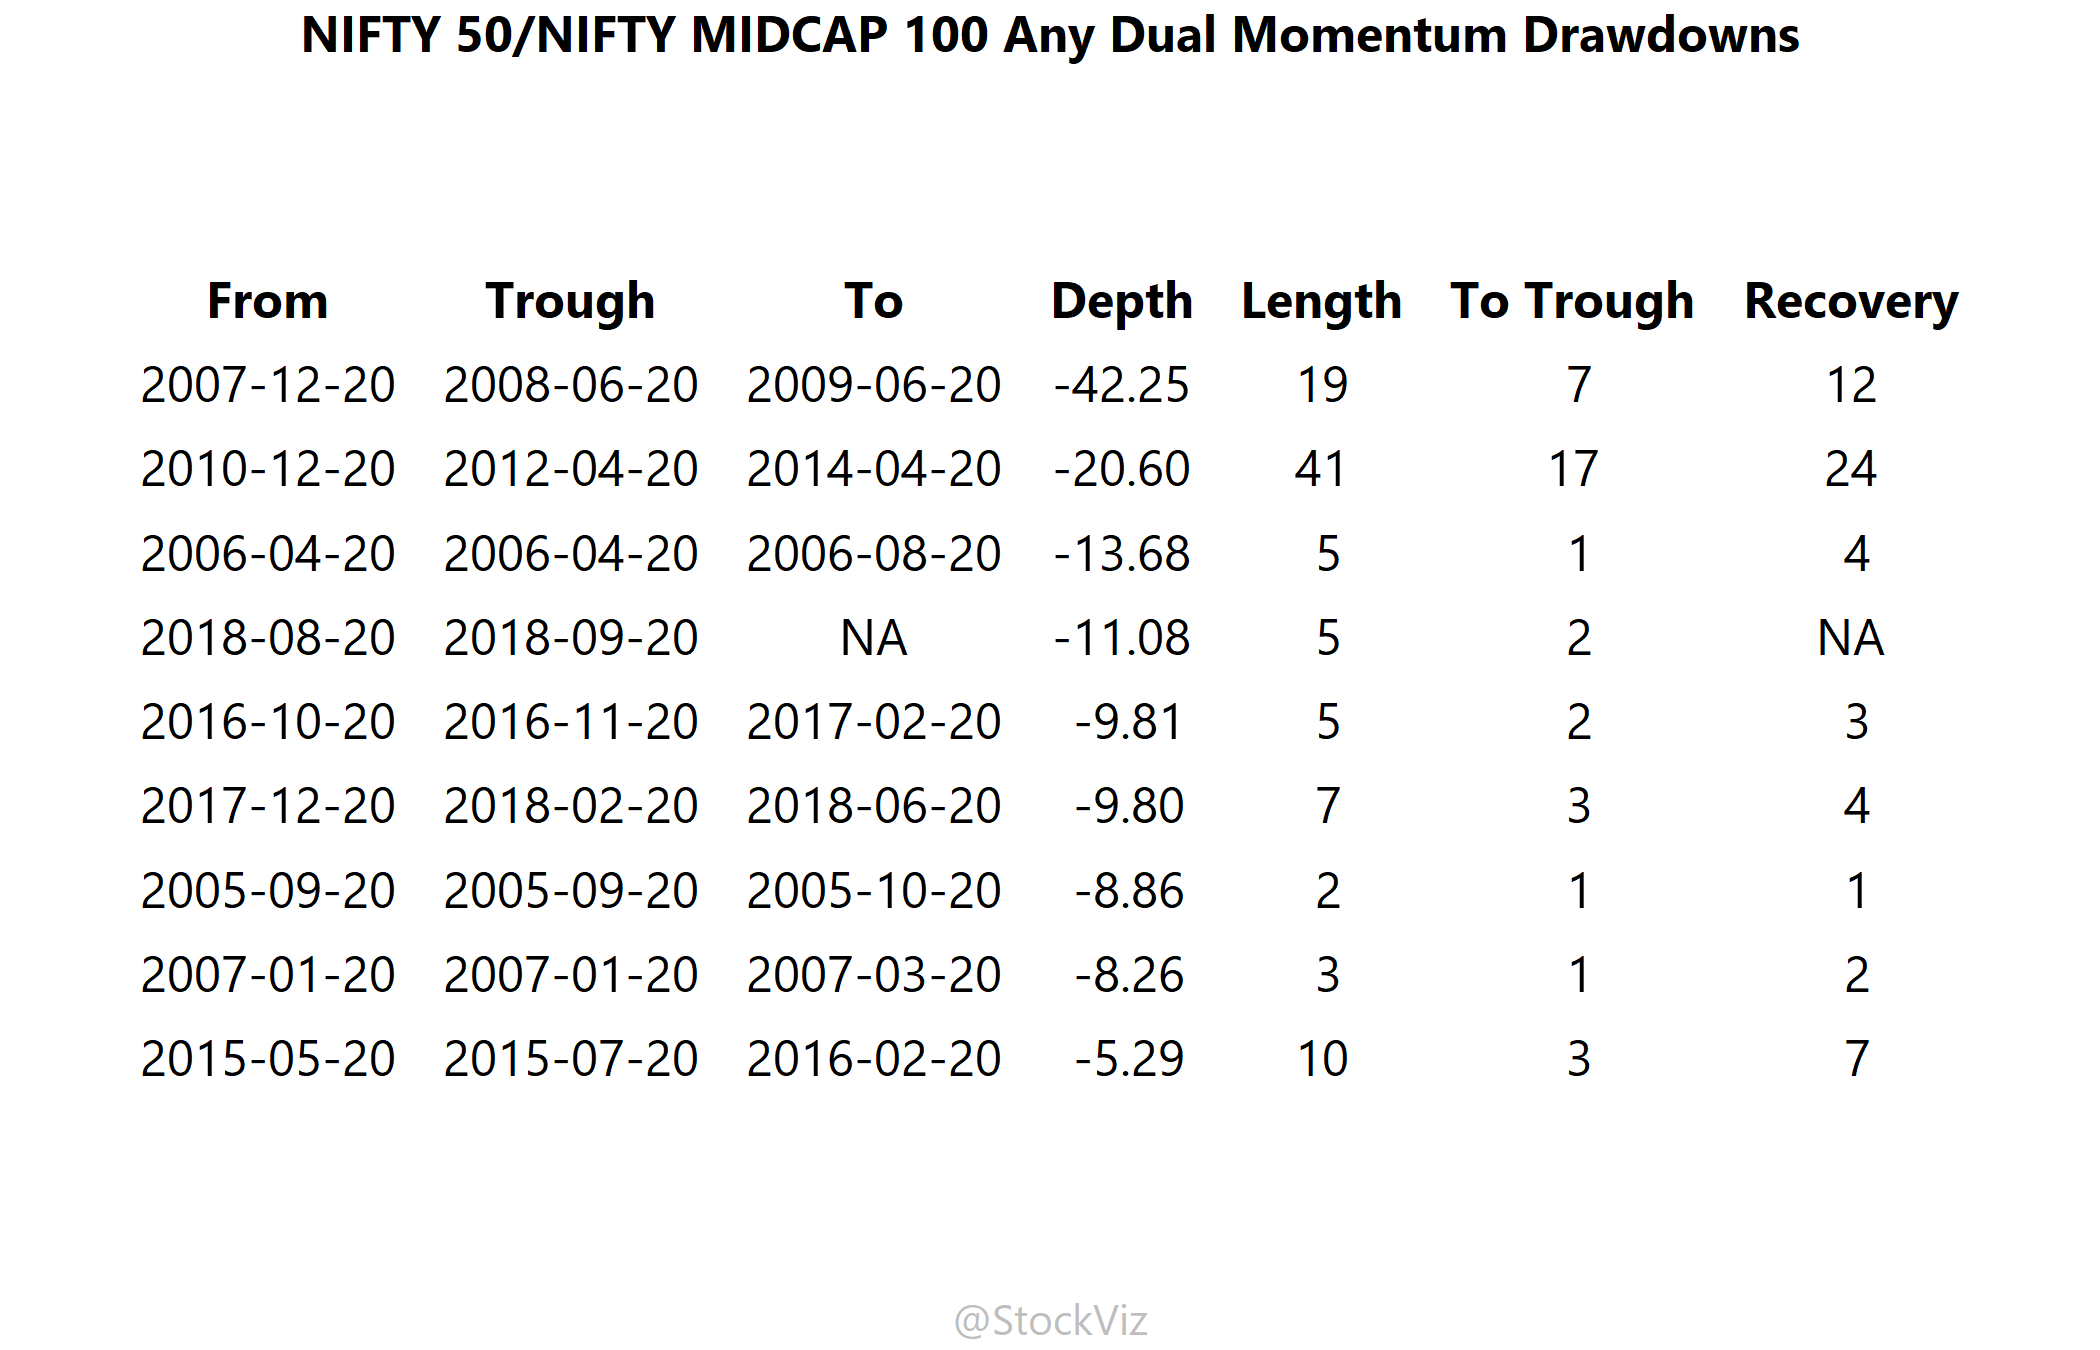 drawdowns of NIFTY 50/MIDCAP 100 dual momentum over any lookback